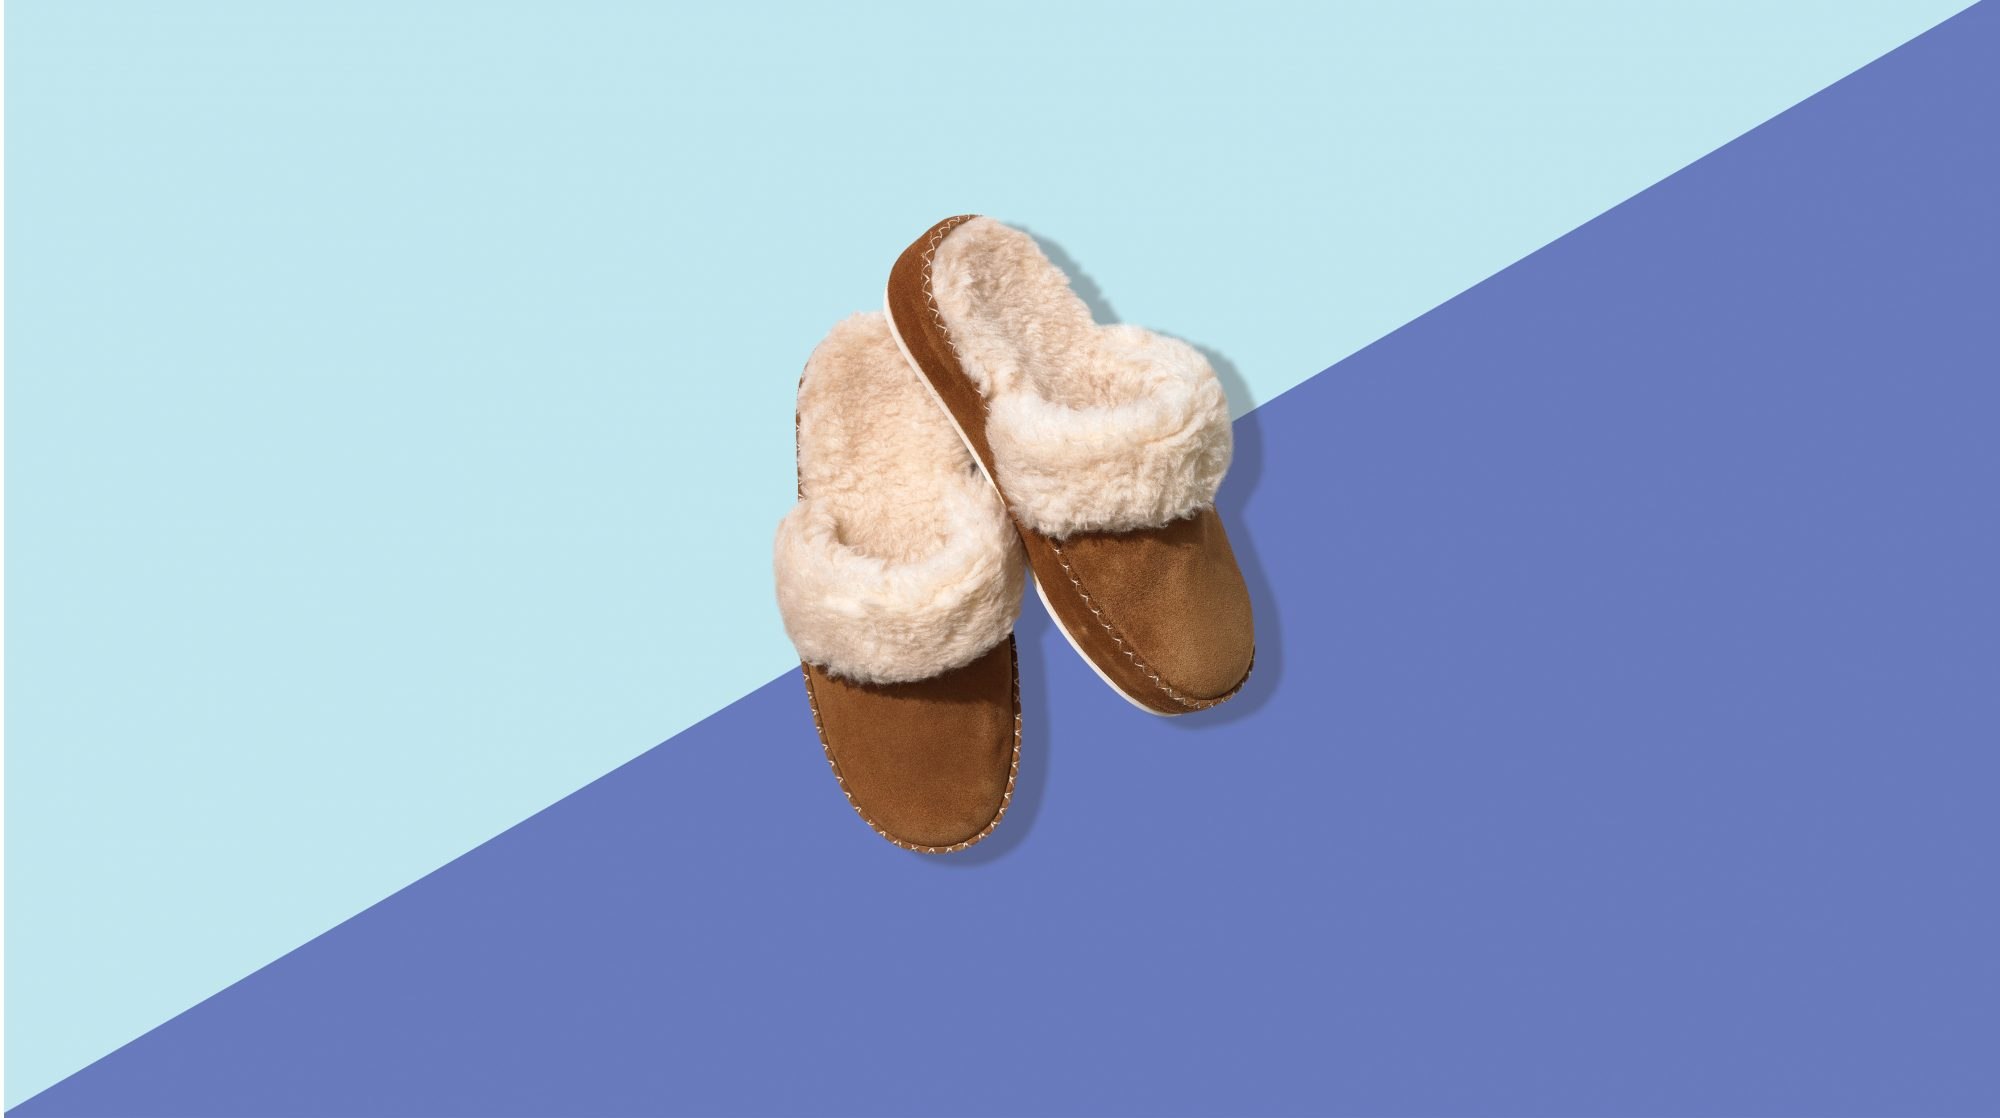 vionic marley slipper comfort great gifts december 2017 presents